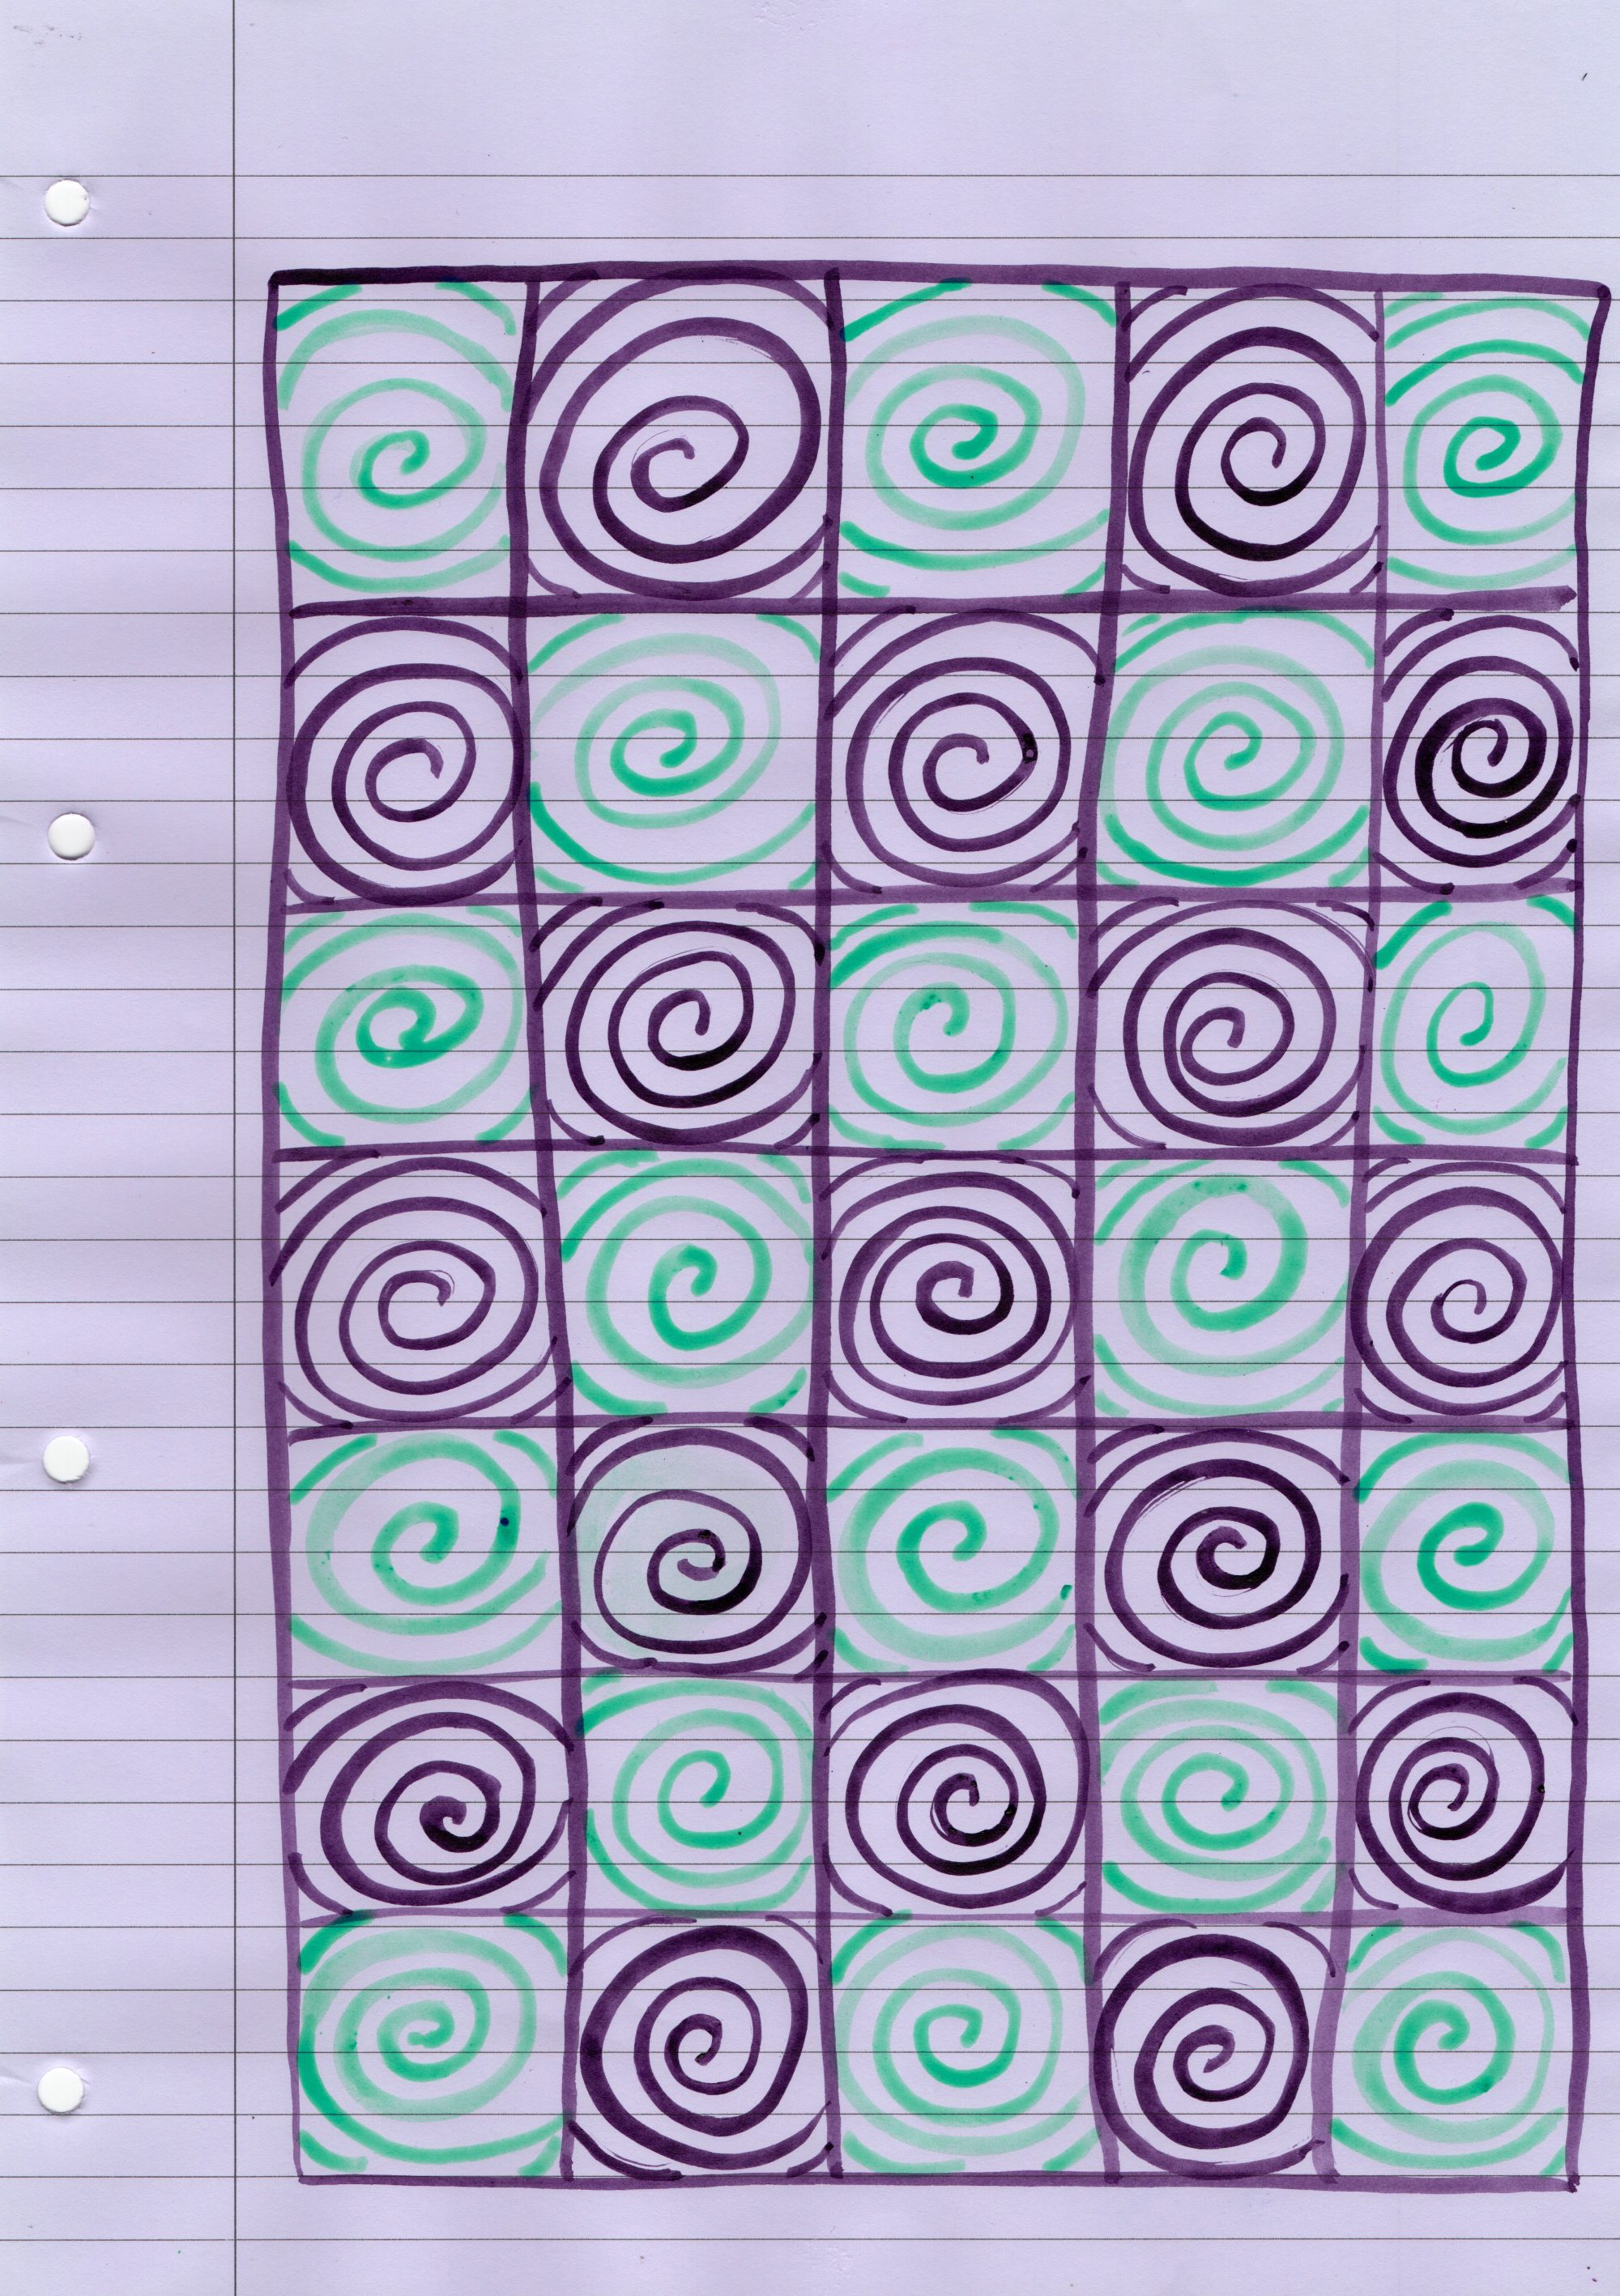 A sheet of lilac lined office paper, leaving the margin clear, is filled with a multicoloured pen drawing of 35 small spirals in purple and green. They are organised in a 5 by 7 portrait grid, with purple lines in between each spiral. A single purple line in ink surrounds the spirals, running parallel with the page margin.